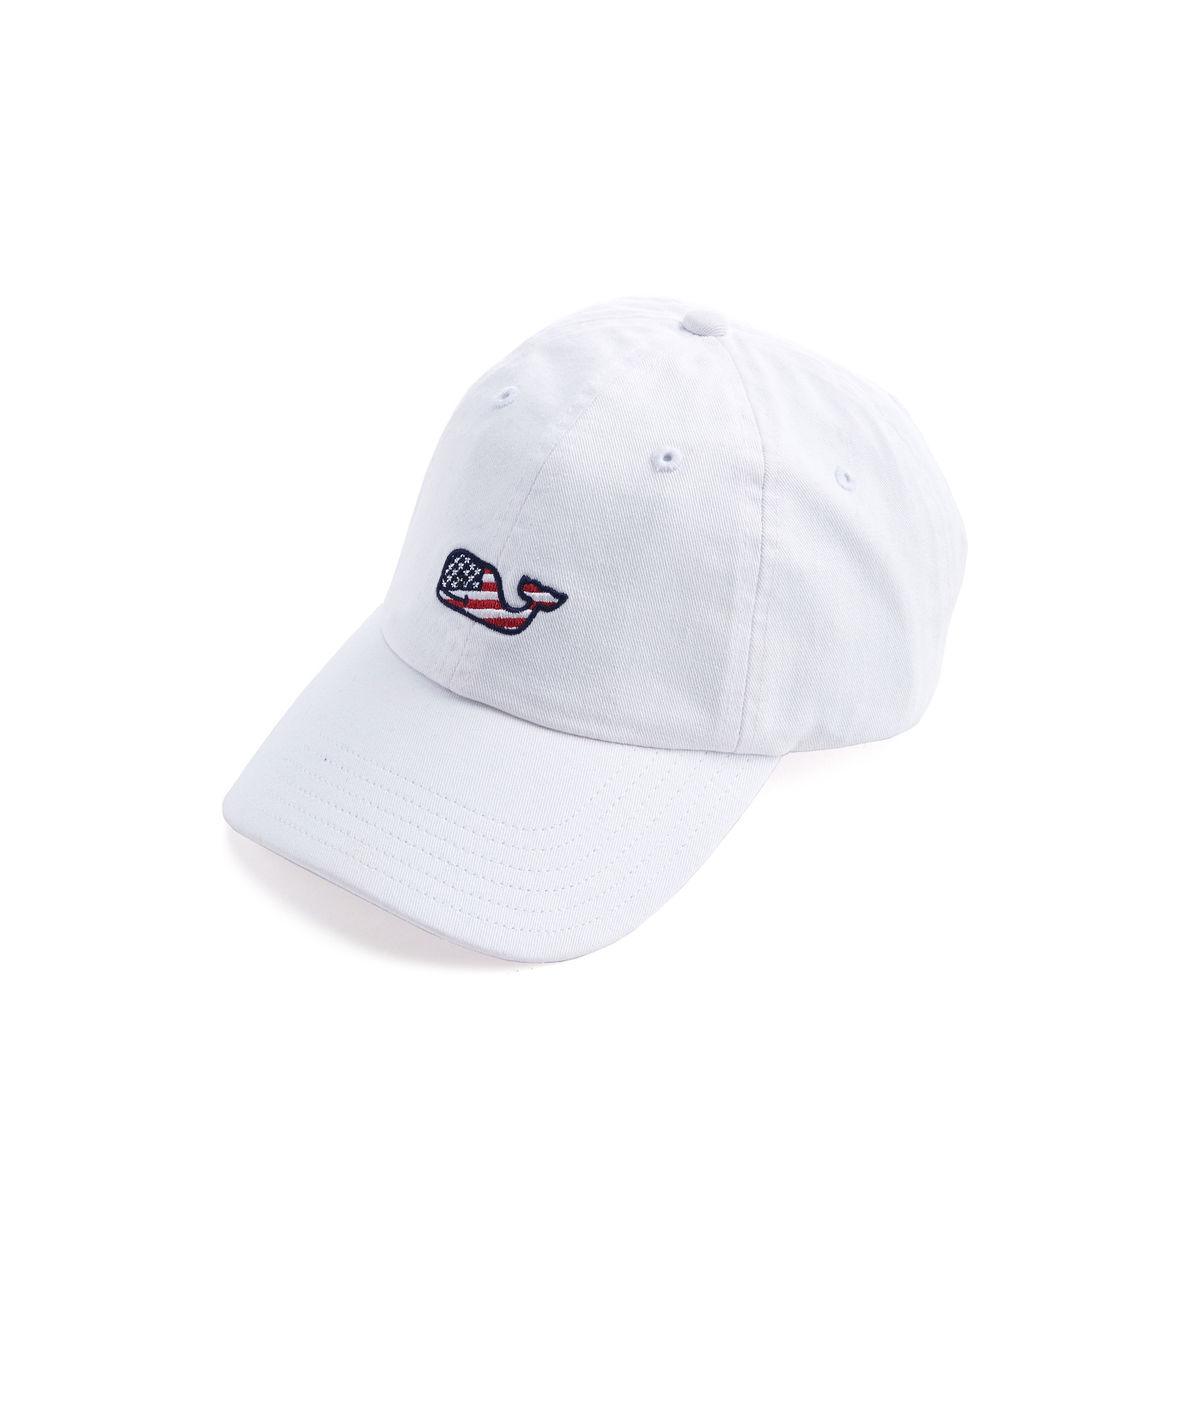 35cf97efdfd5a Shop Flag Whale Hat at vineyard vines